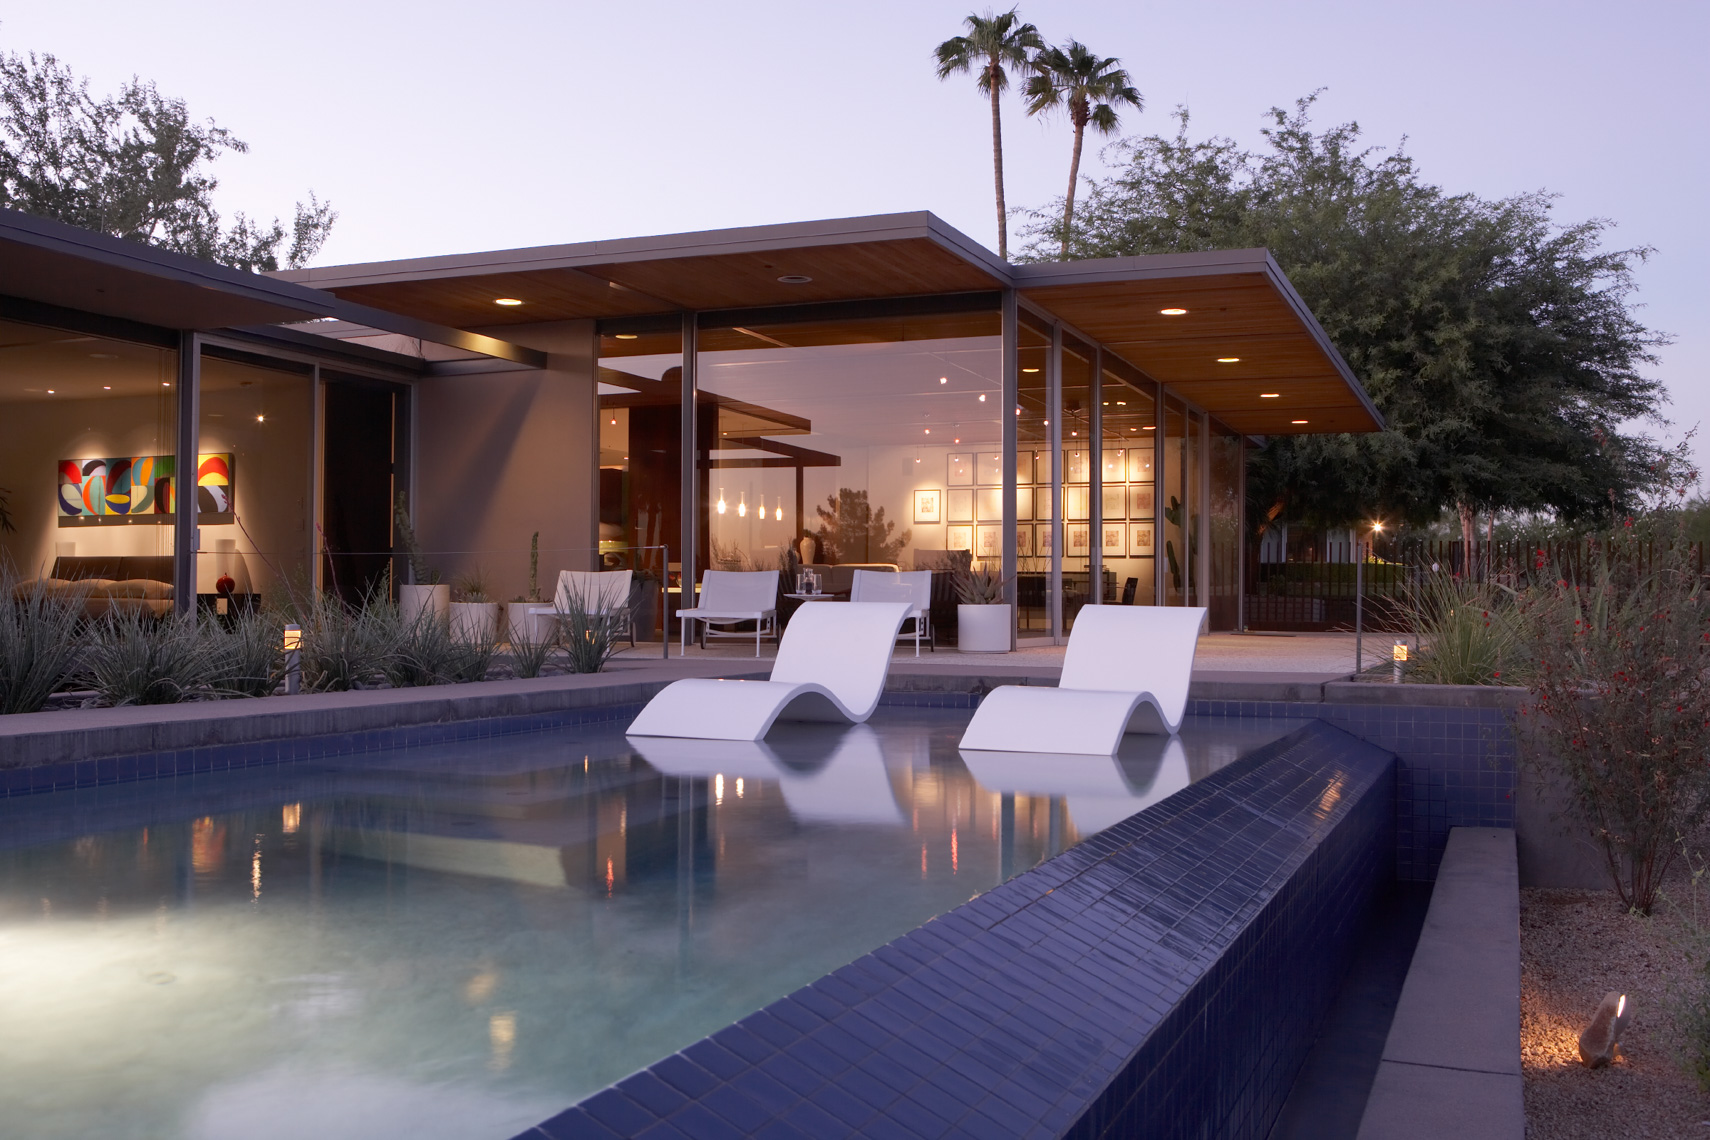 White modern chairs in blue pool at dusk in the desert with modern home and palm trees behind San Francisco architectural photographer